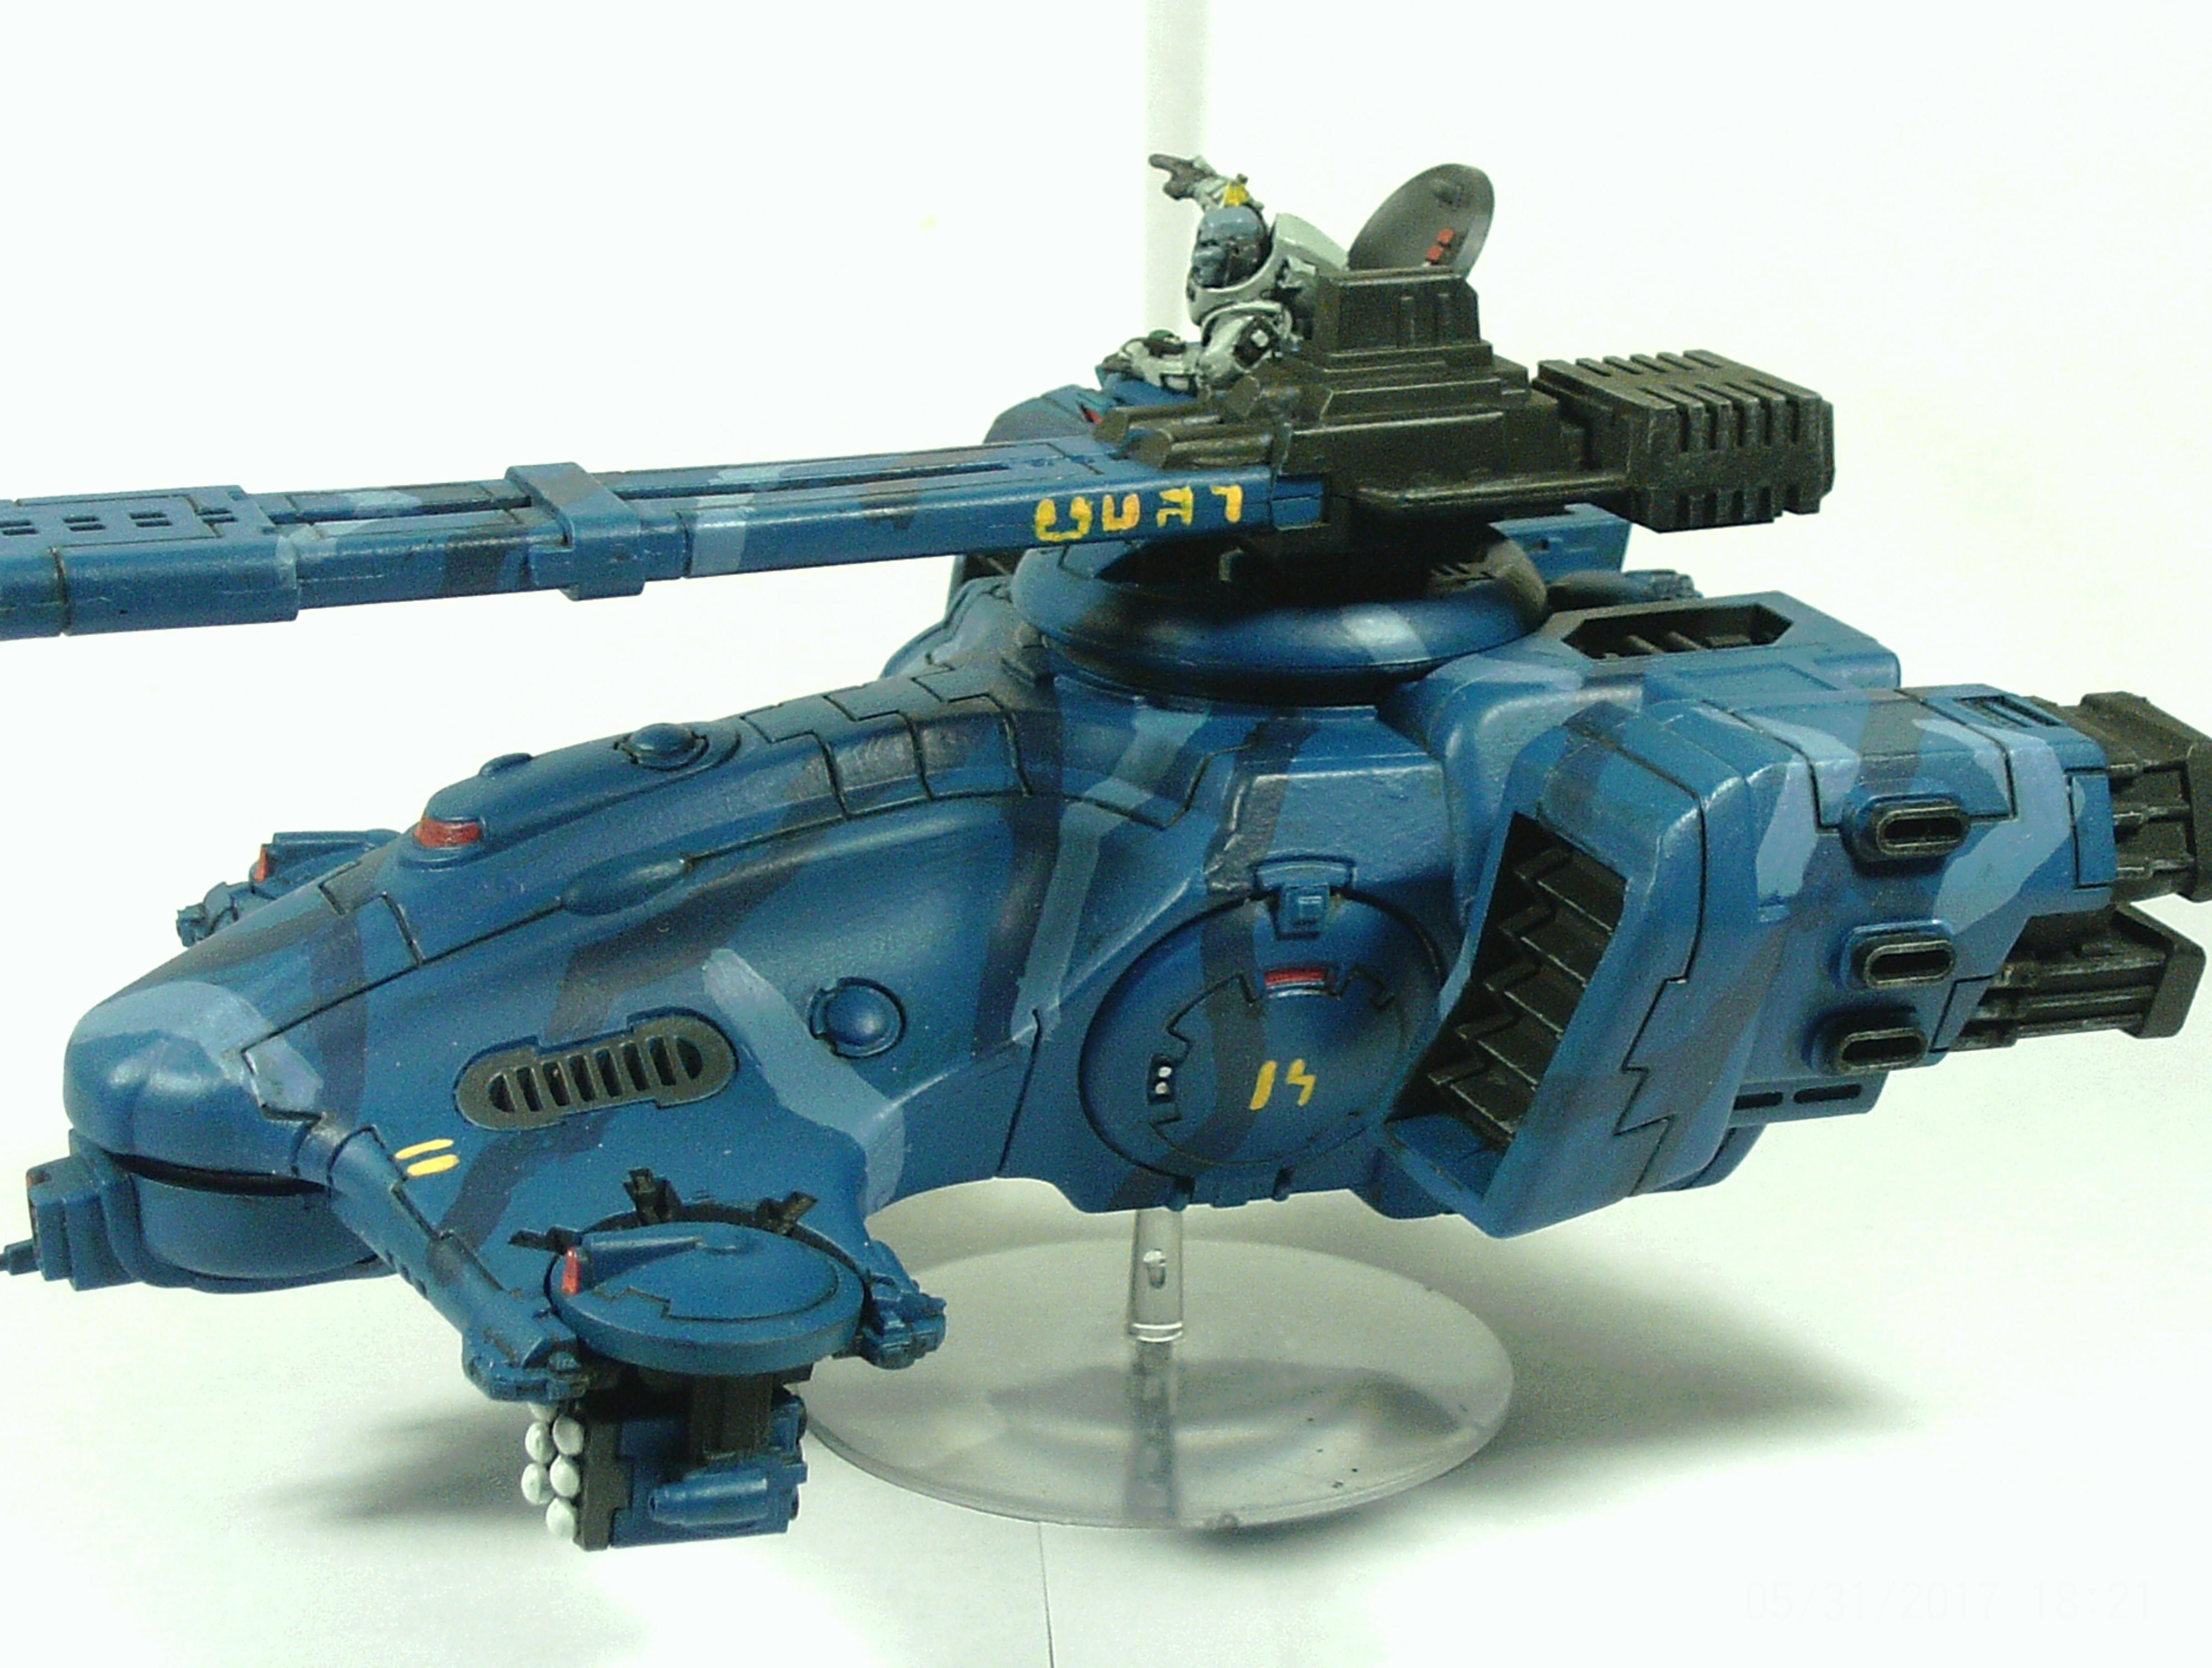 Caste, Devilfish, Fire, Gunship, Hammerhead, Longstrike, Railgun, Tank, Tau, Warriors